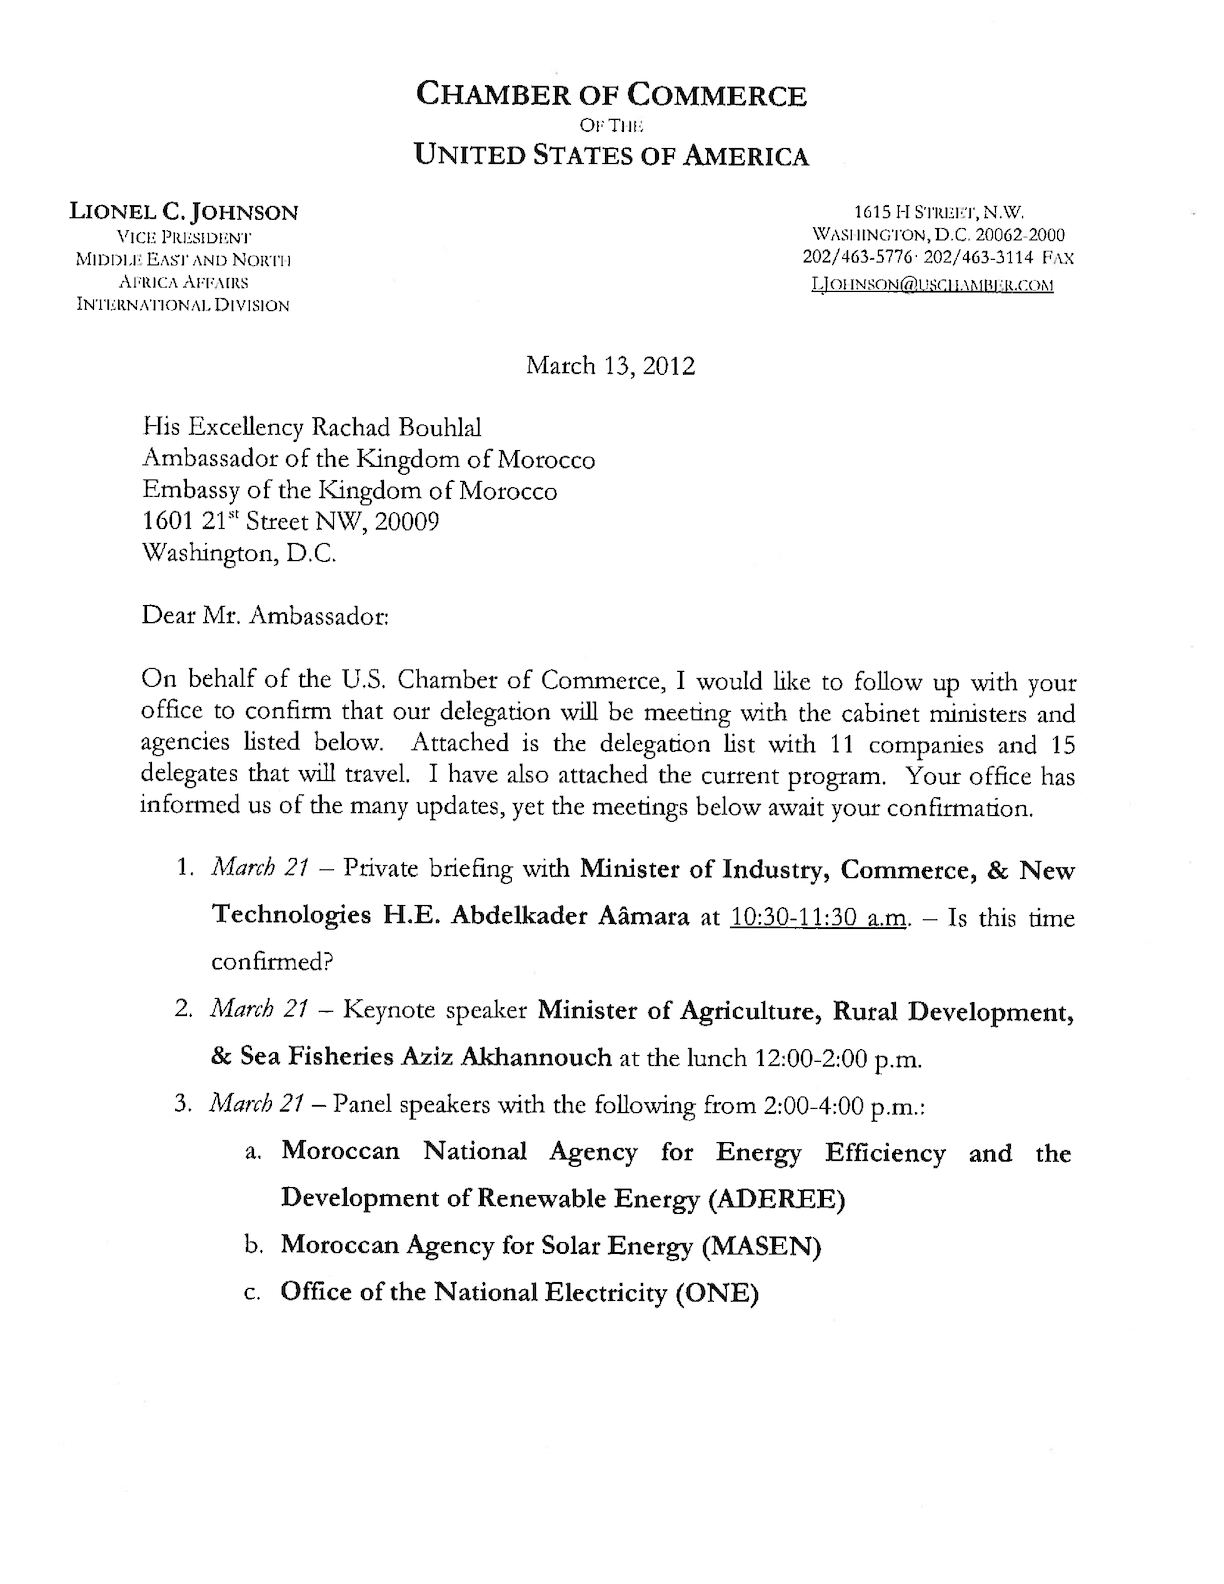 Lionel Johnson Letter To HE Bouhlal - March 13